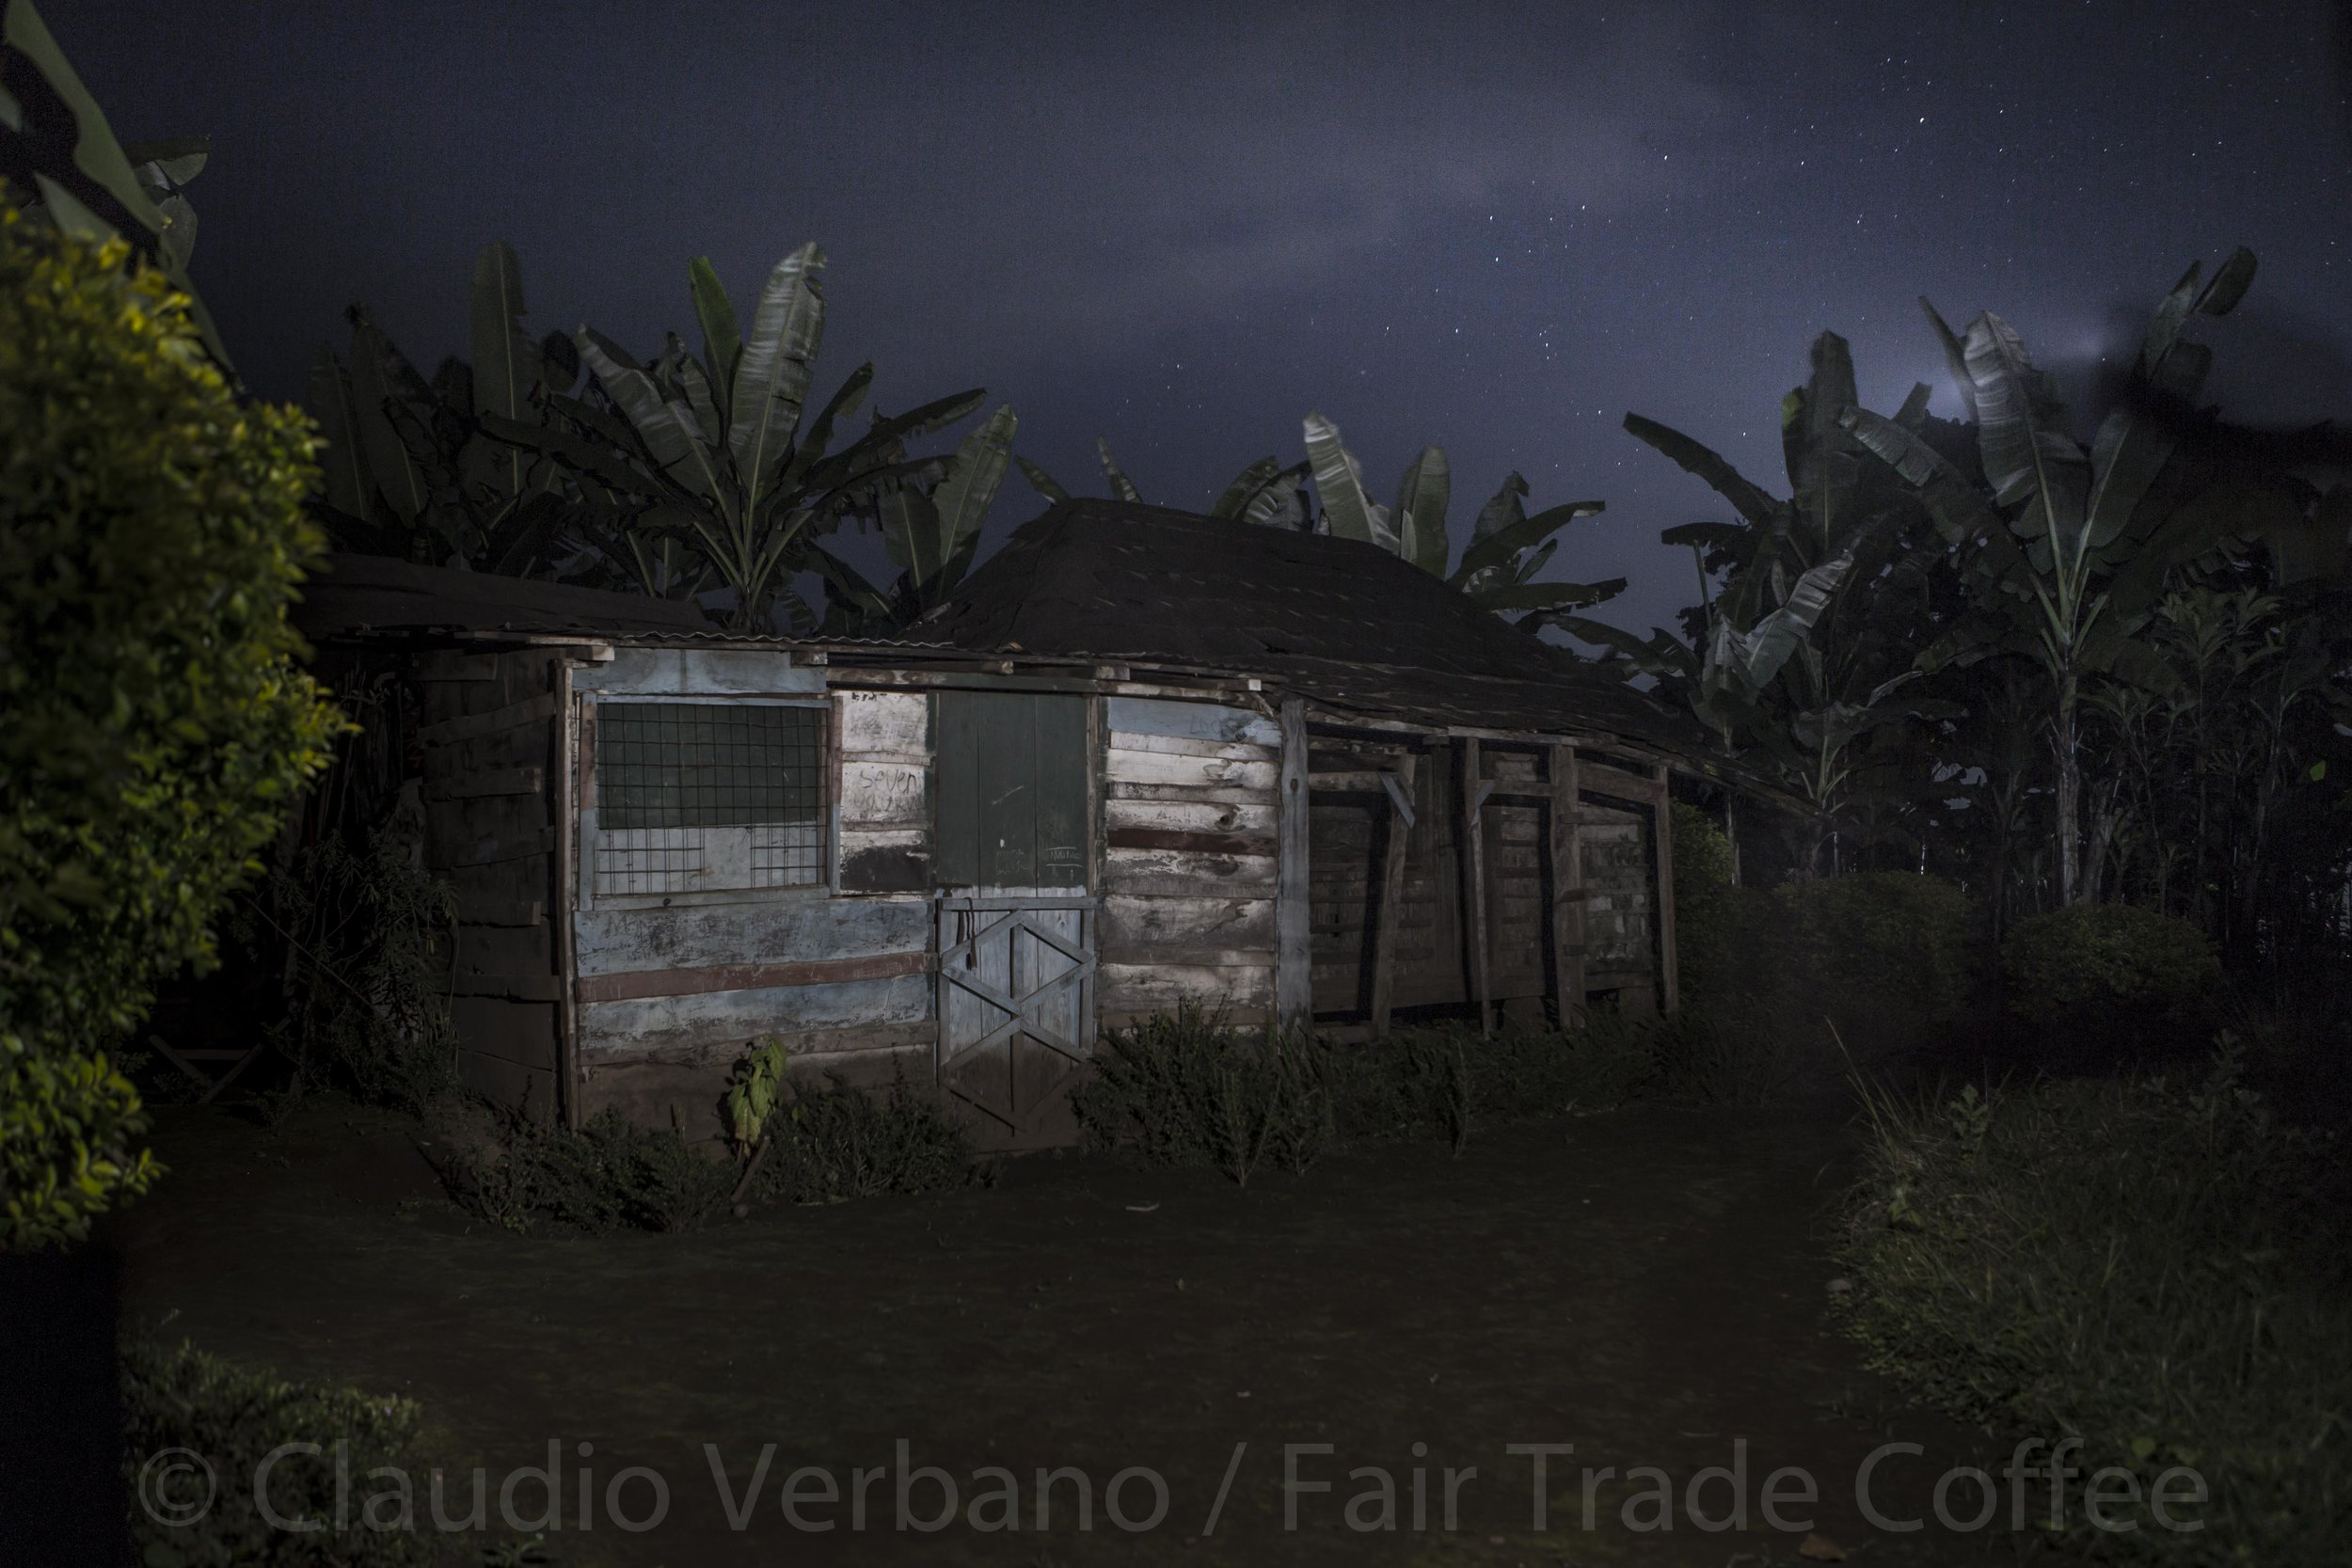 Fair Trade Coffee by Claudio Verbano 02.jpg